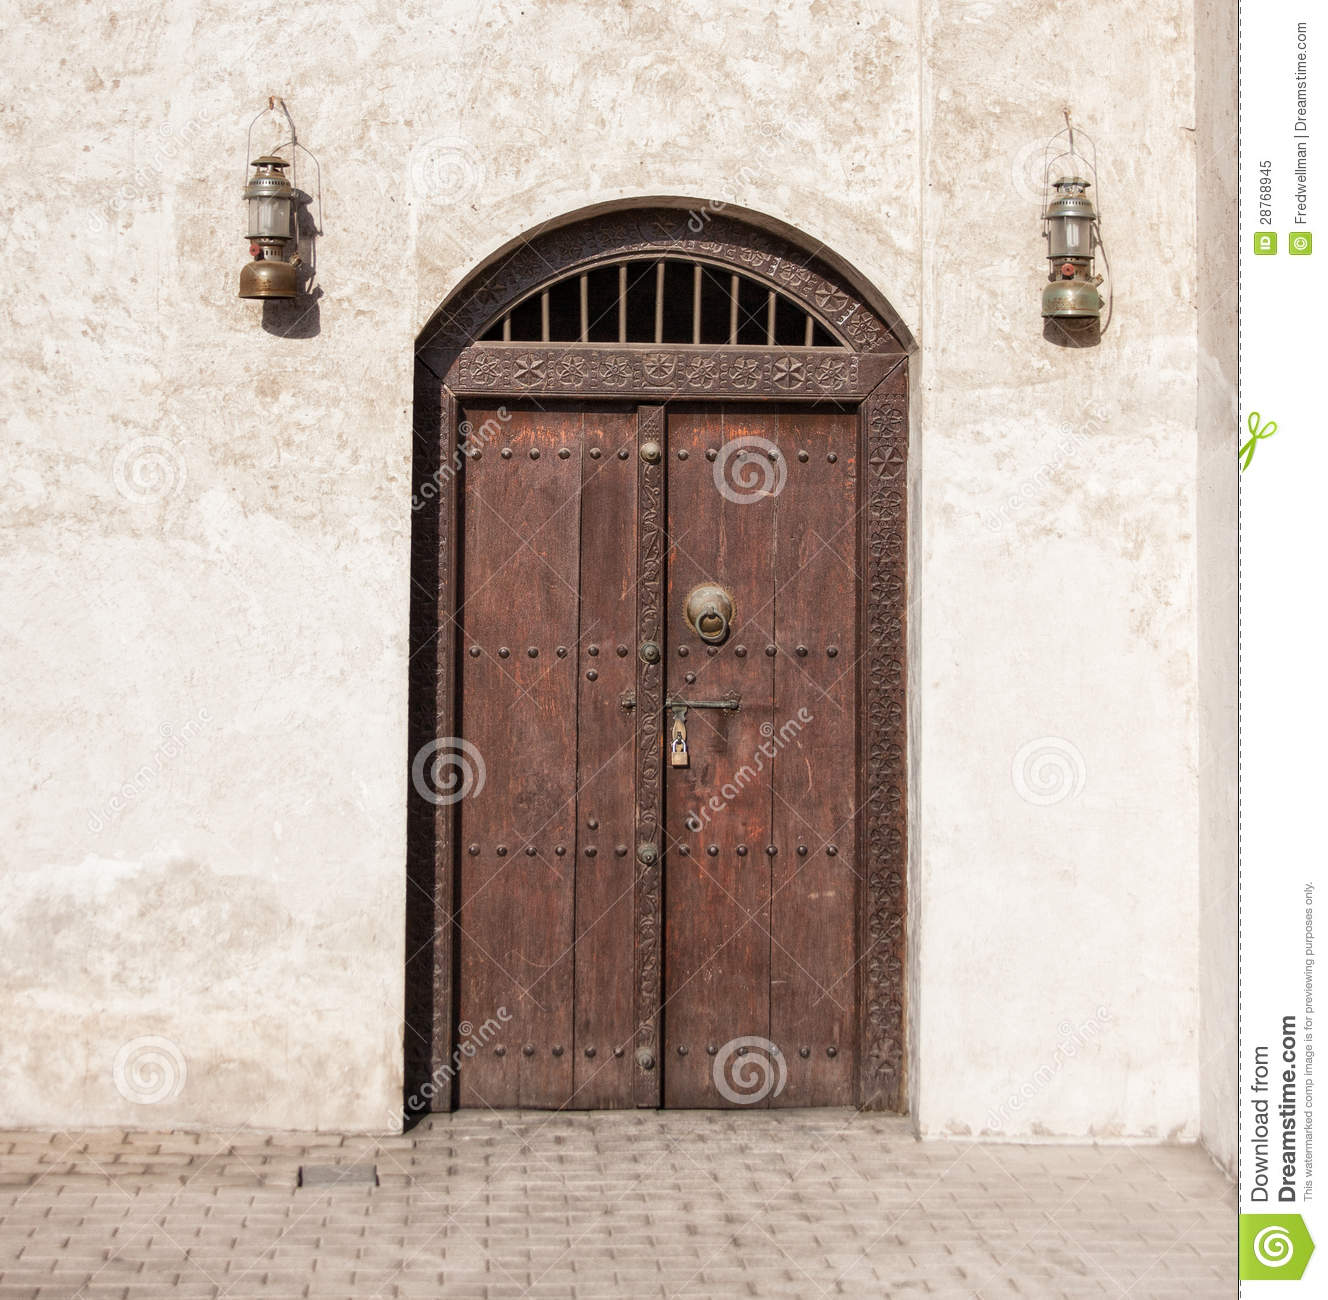 Arab door royalty free stock photo image 28768945 for Door design uae